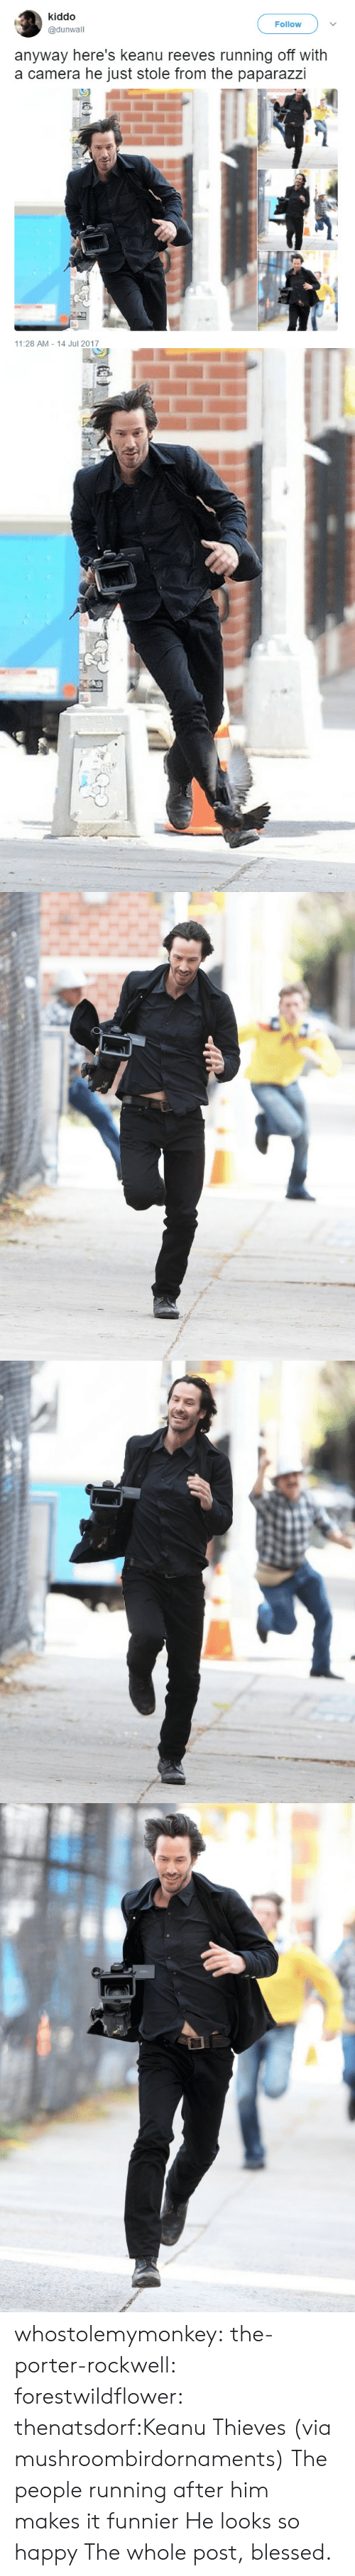 rockwell: kiddo  @dunwall  Follow  anyway here's keanu reeves running off with  a camera he just stole from the paparazzi  11:28 AM 14 Jul 2017 whostolemymonkey:  the-porter-rockwell:  forestwildflower:  thenatsdorf:Keanu Thieves (via mushroombirdornaments)  The people running after him makes it funnier  He looks so happy  The whole post, blessed.